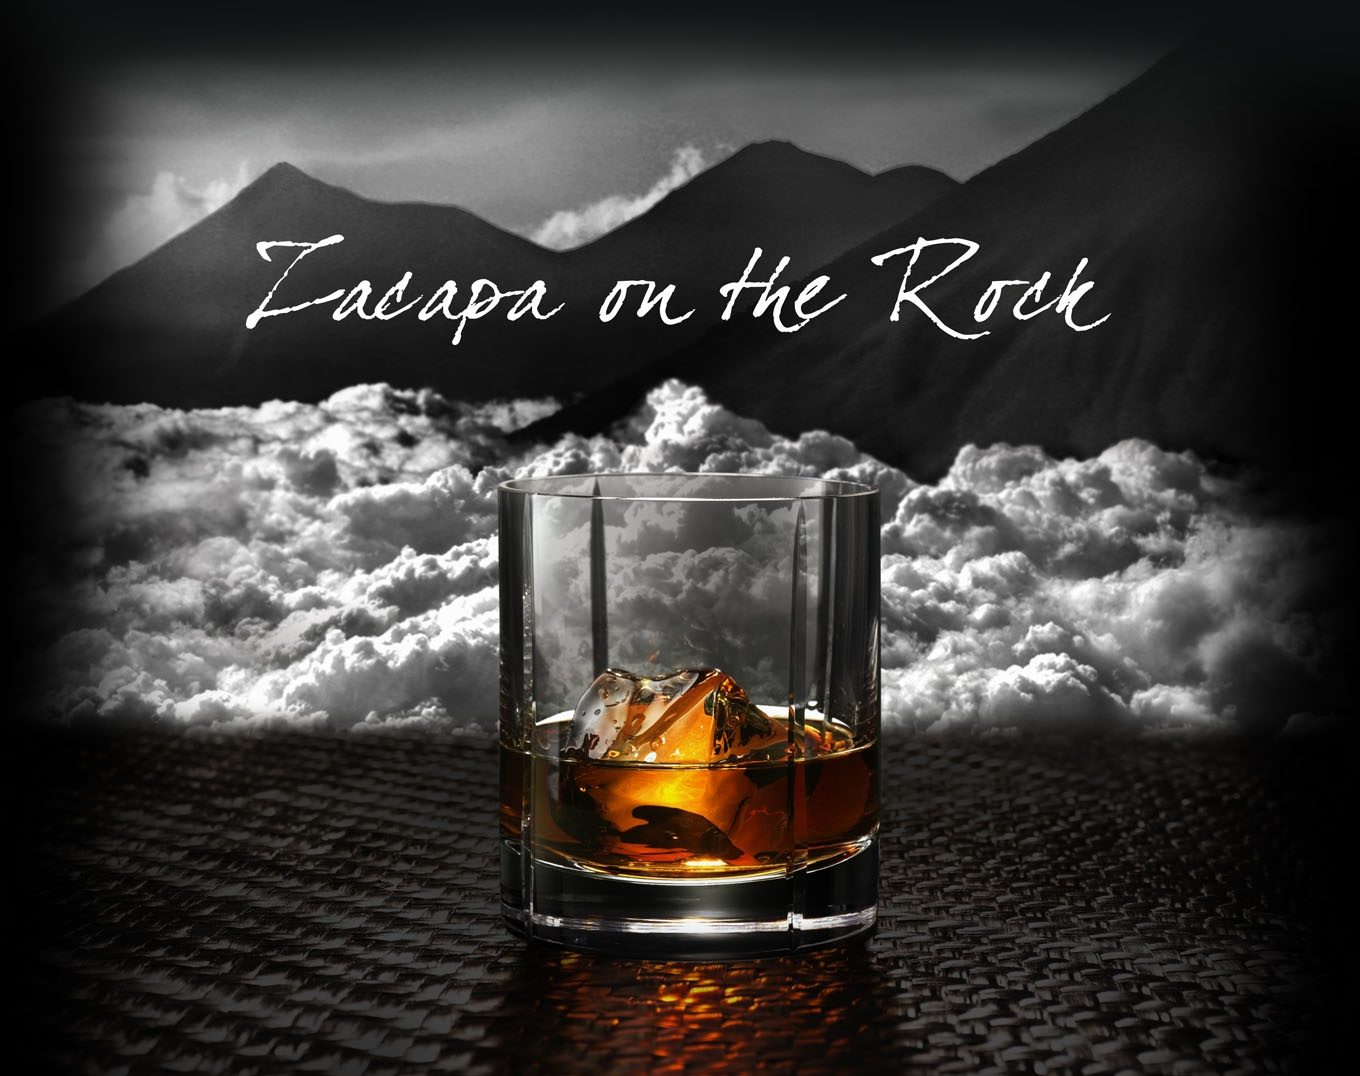 Zacapa_on_the_Rock_Low.jpg